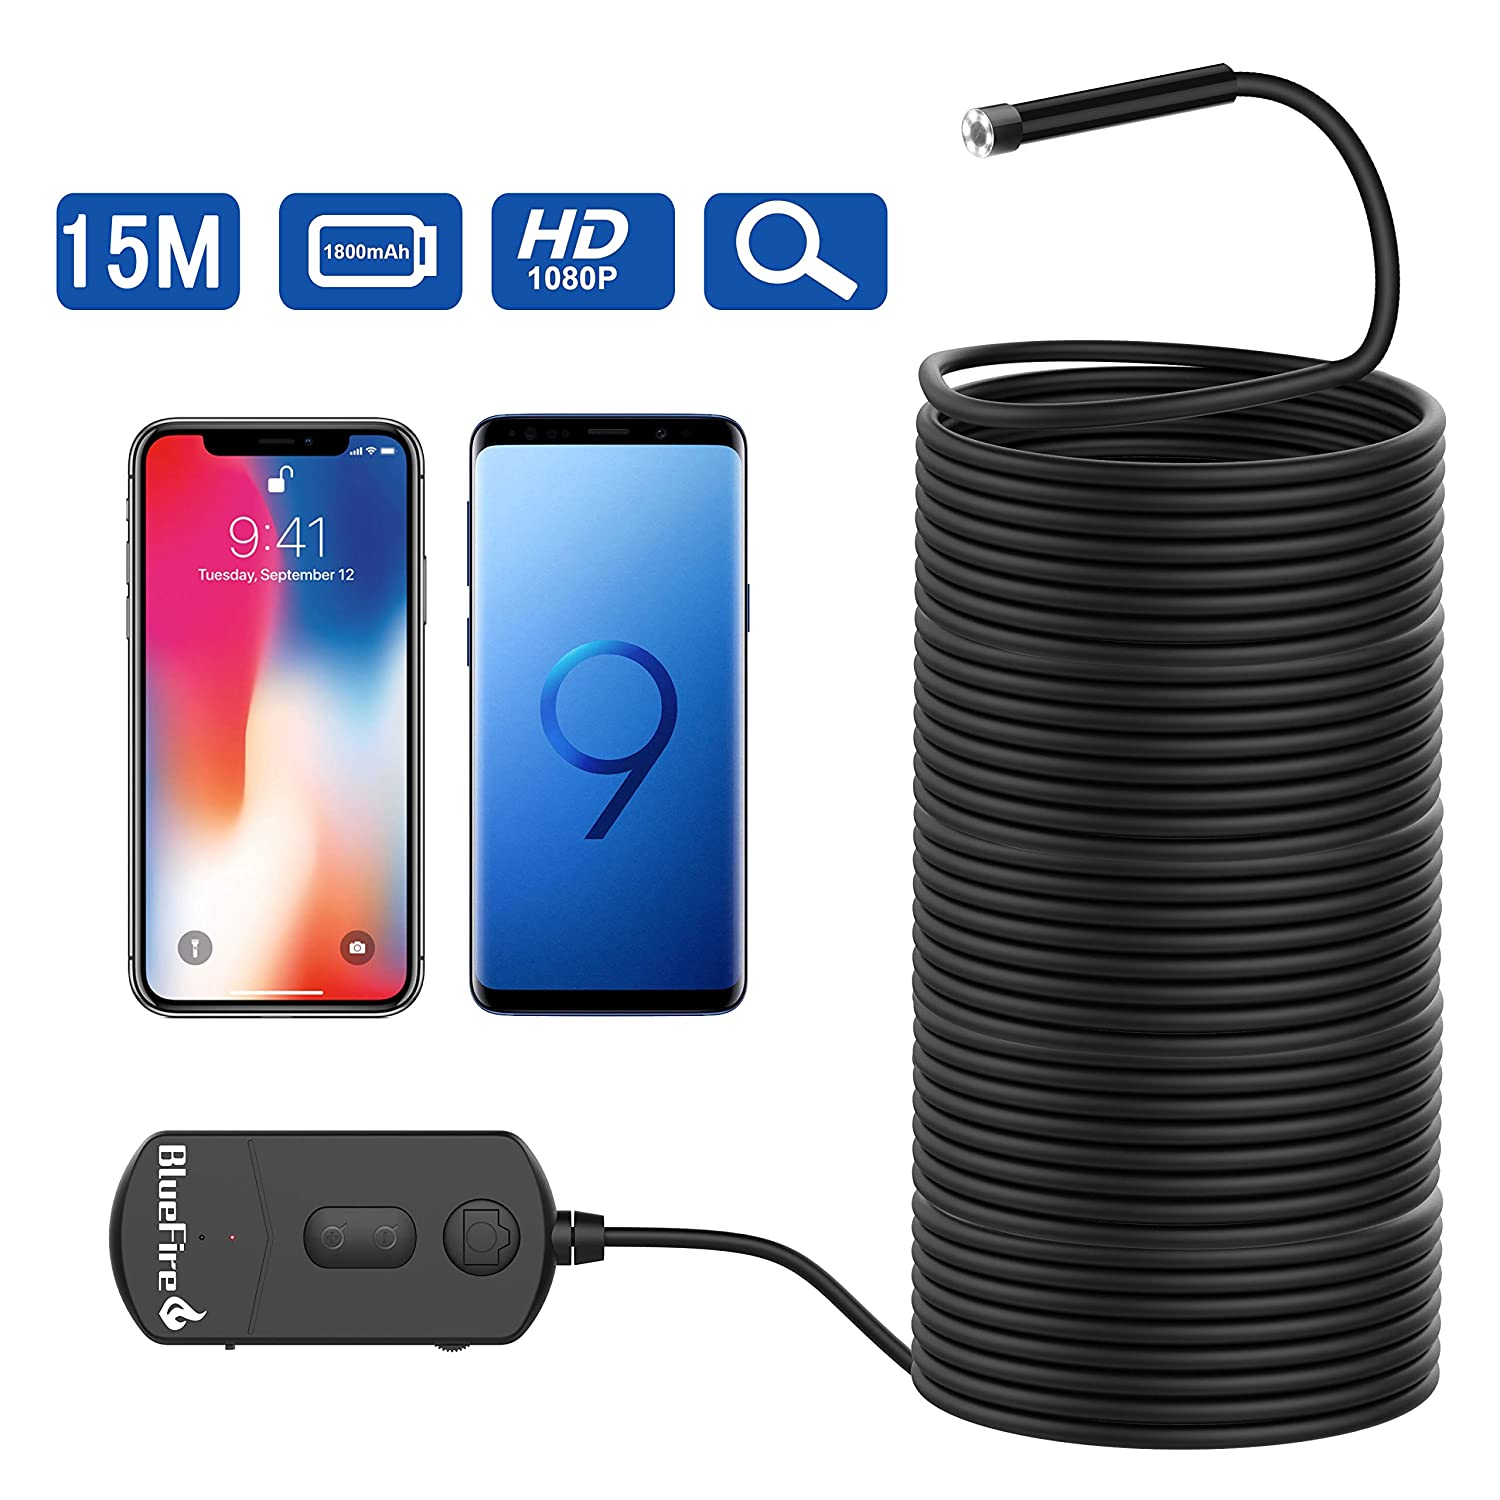 2-5-10m Red 2-in-1 Android Endoscope Camera Connector Android Borescope Inspection Camera For Car Repairing Pipe Examine Pc To Be Distributed All Over The World Video Surveillance Surveillance Cameras